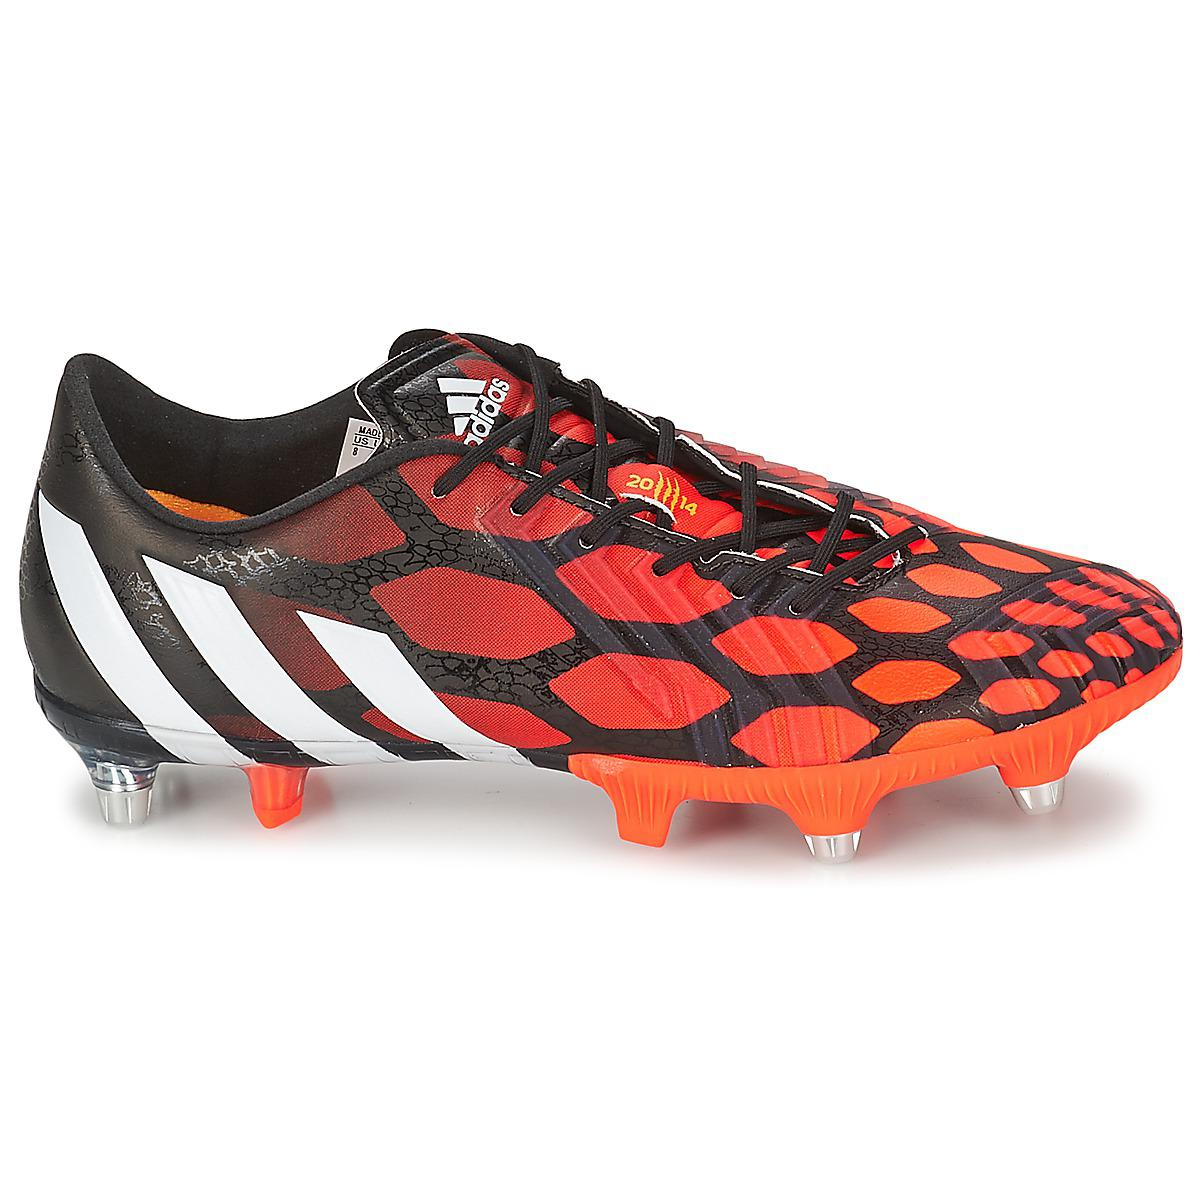 In Predator Football Boots Red Instinct For S Adidas Men's 6Yxwdq4dT